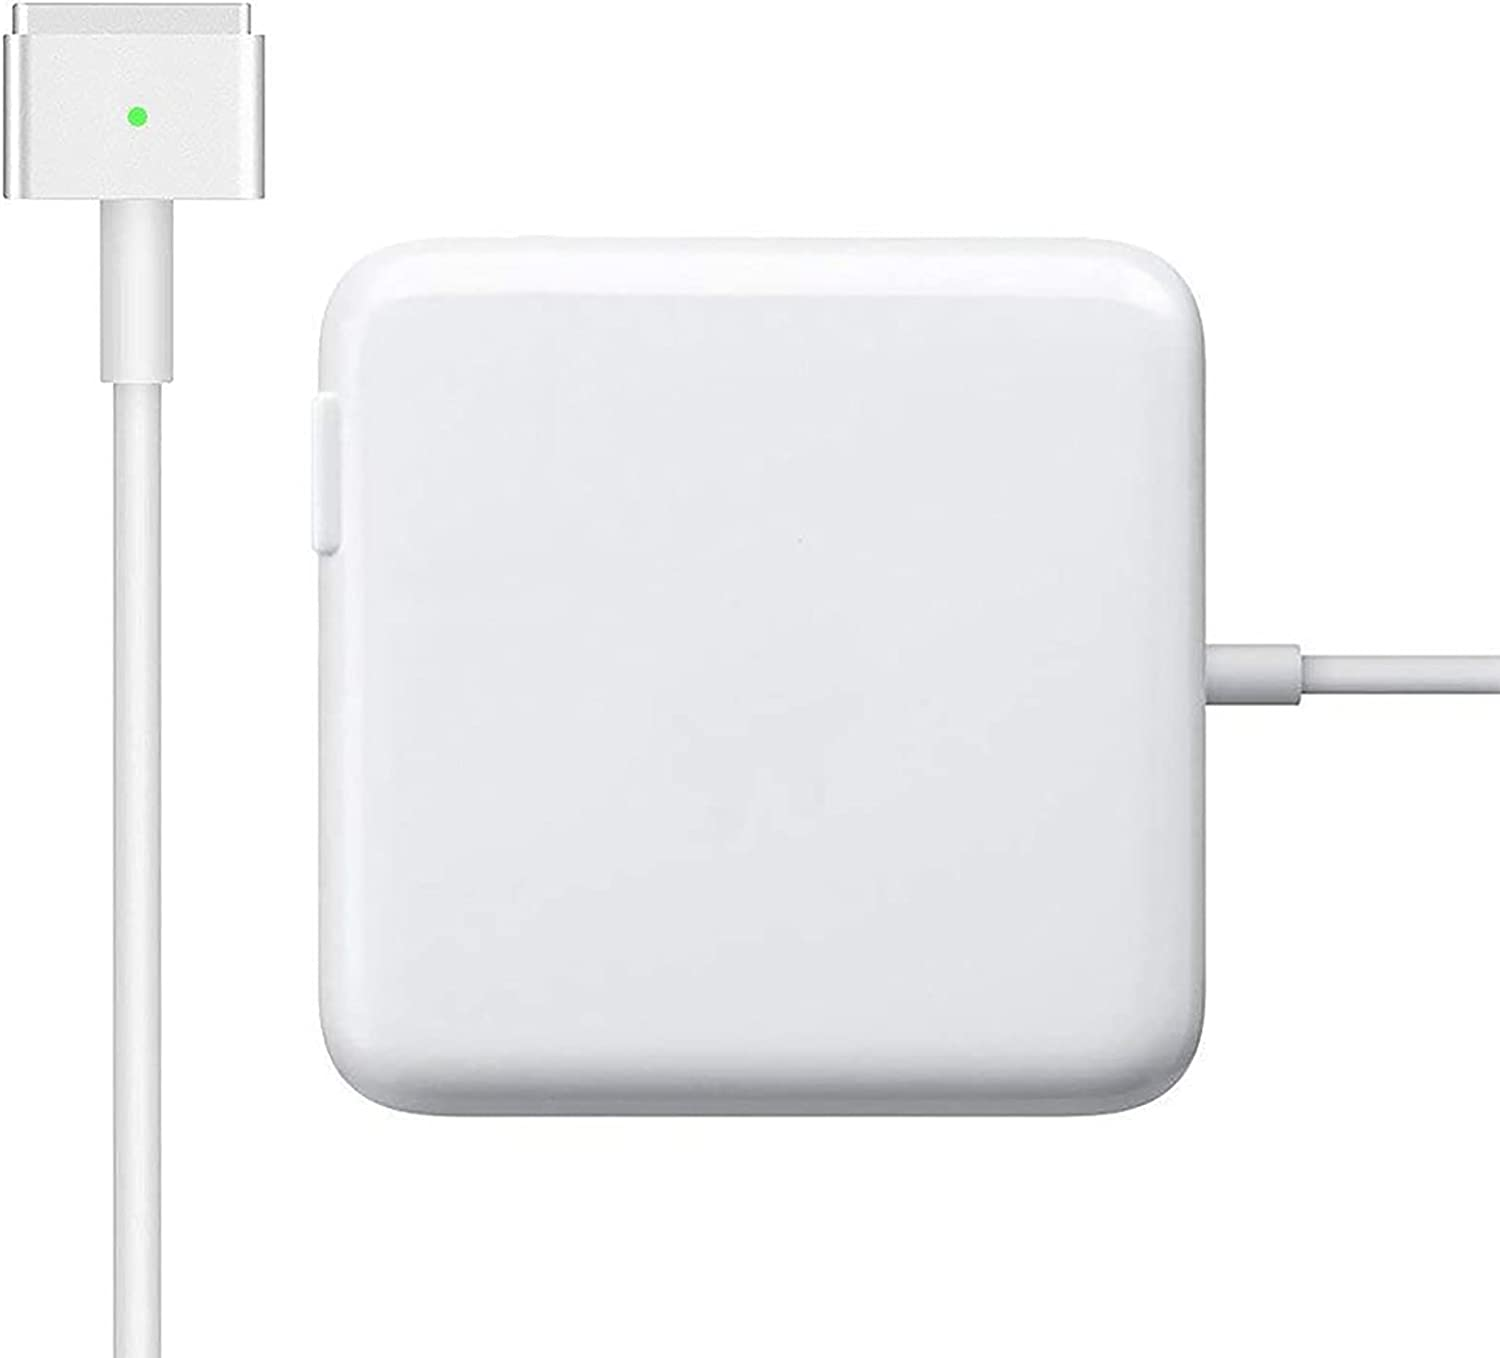 Mac Book Air Charger,AC 45W Magnetic 2 Power Adapter T-Tip Magnetic Connector,Replacement Charger for Mac Book Air 11 inch and 13 inch After Mid 2012